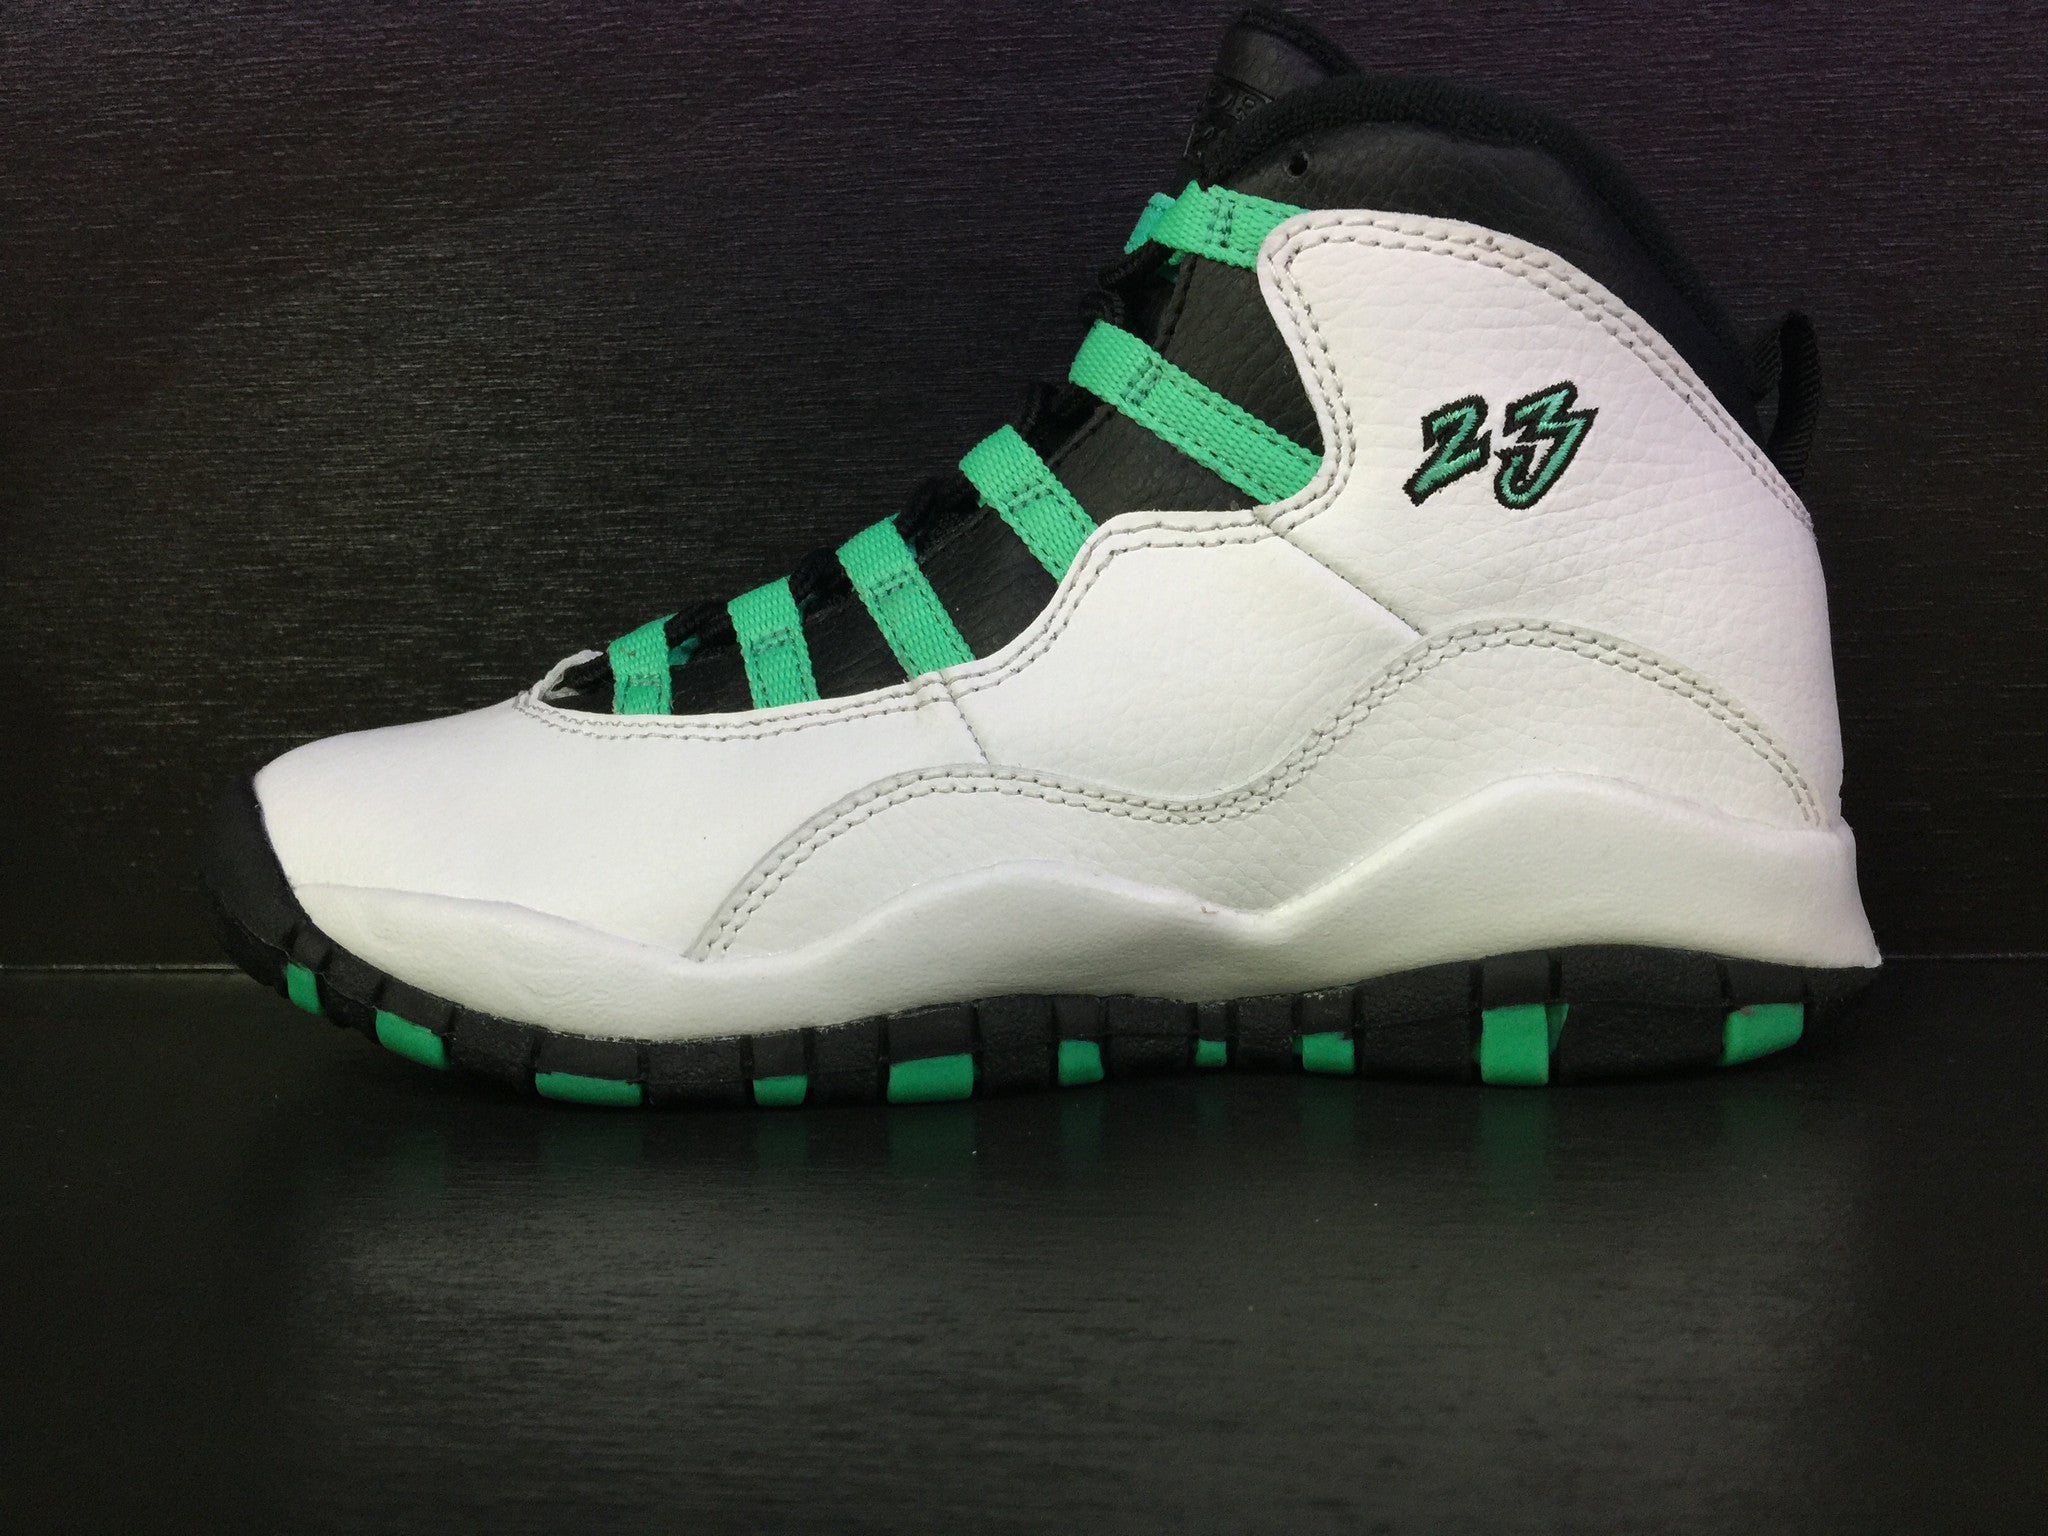 Air Jordan 10 Retro GG 'Verde'